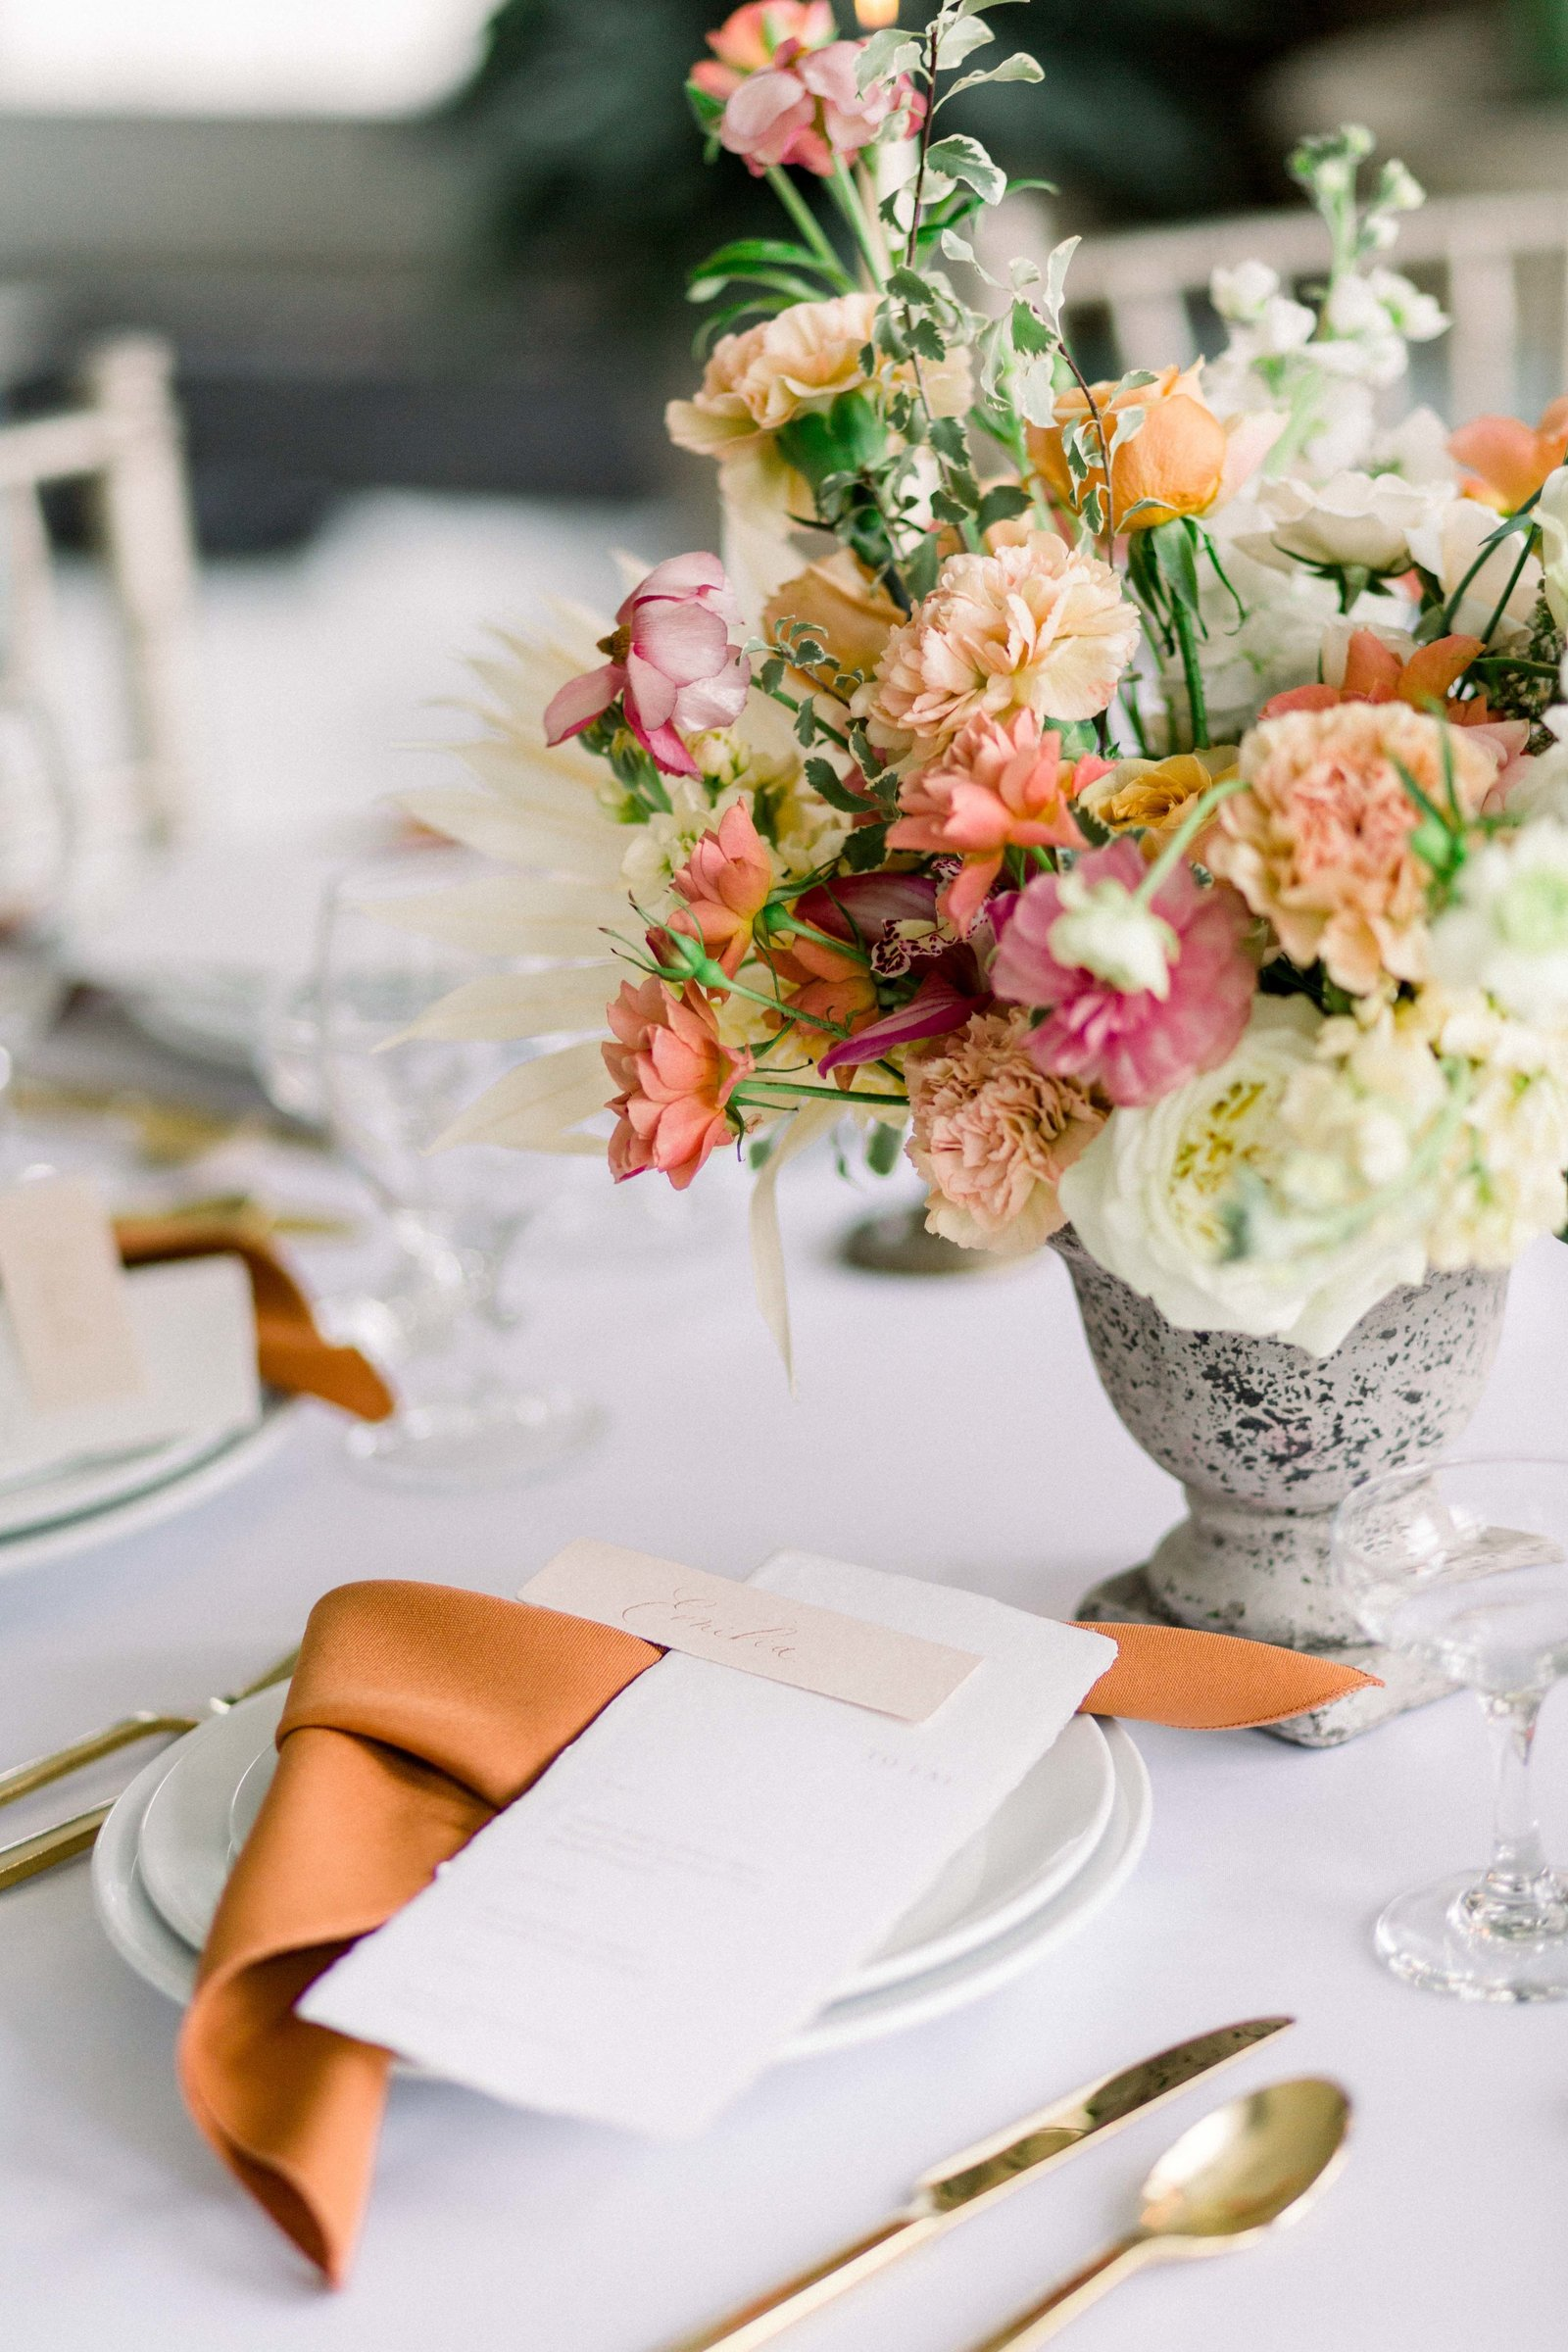 wedding centerpiece flowers orange pink